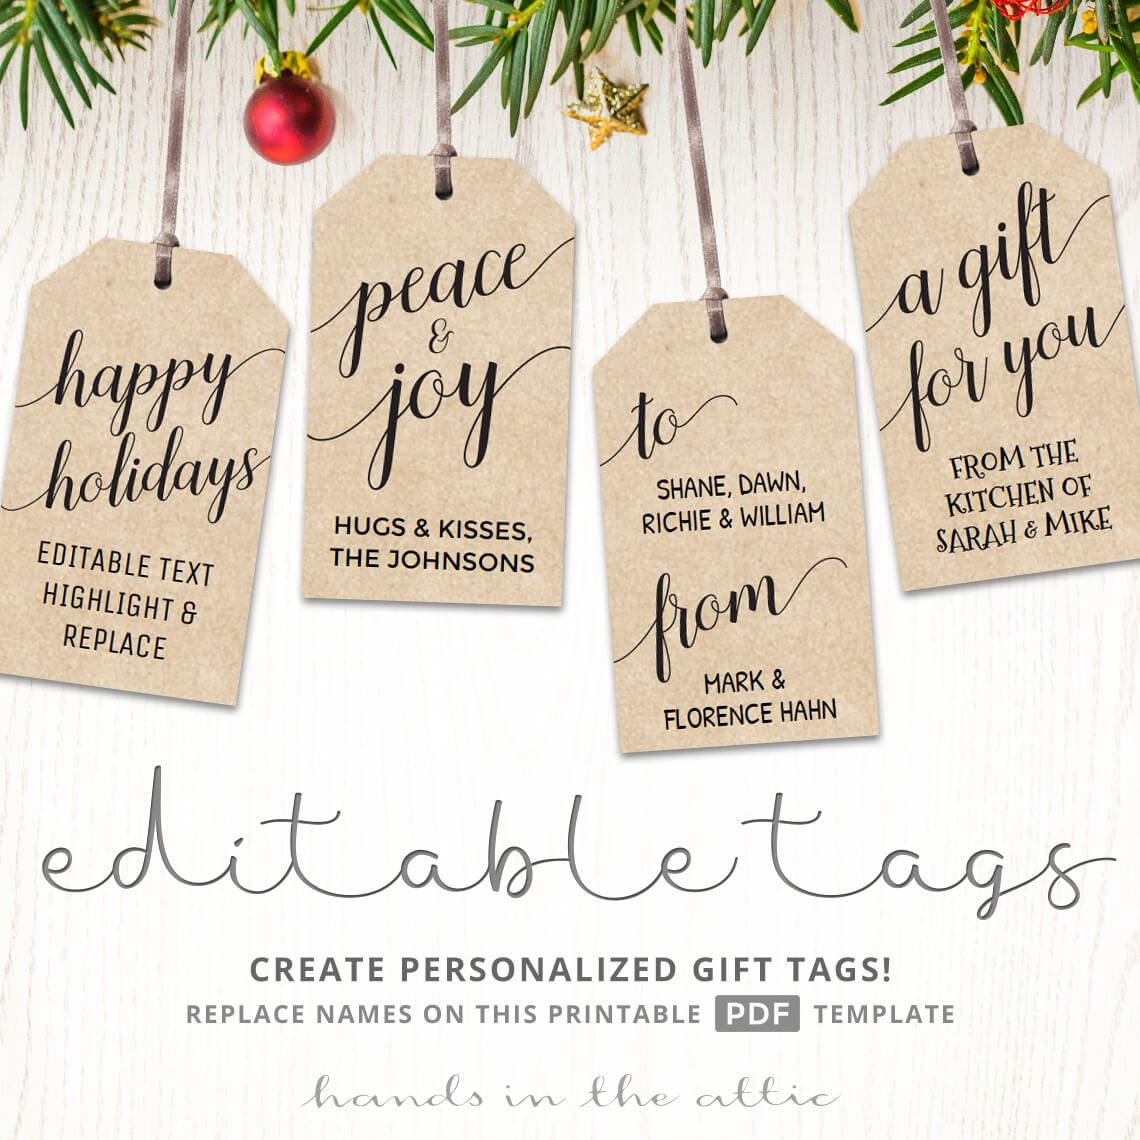 006 Rare Printable Christma Gift Tag Template High Definition  Templates Free Holiday For WordFull